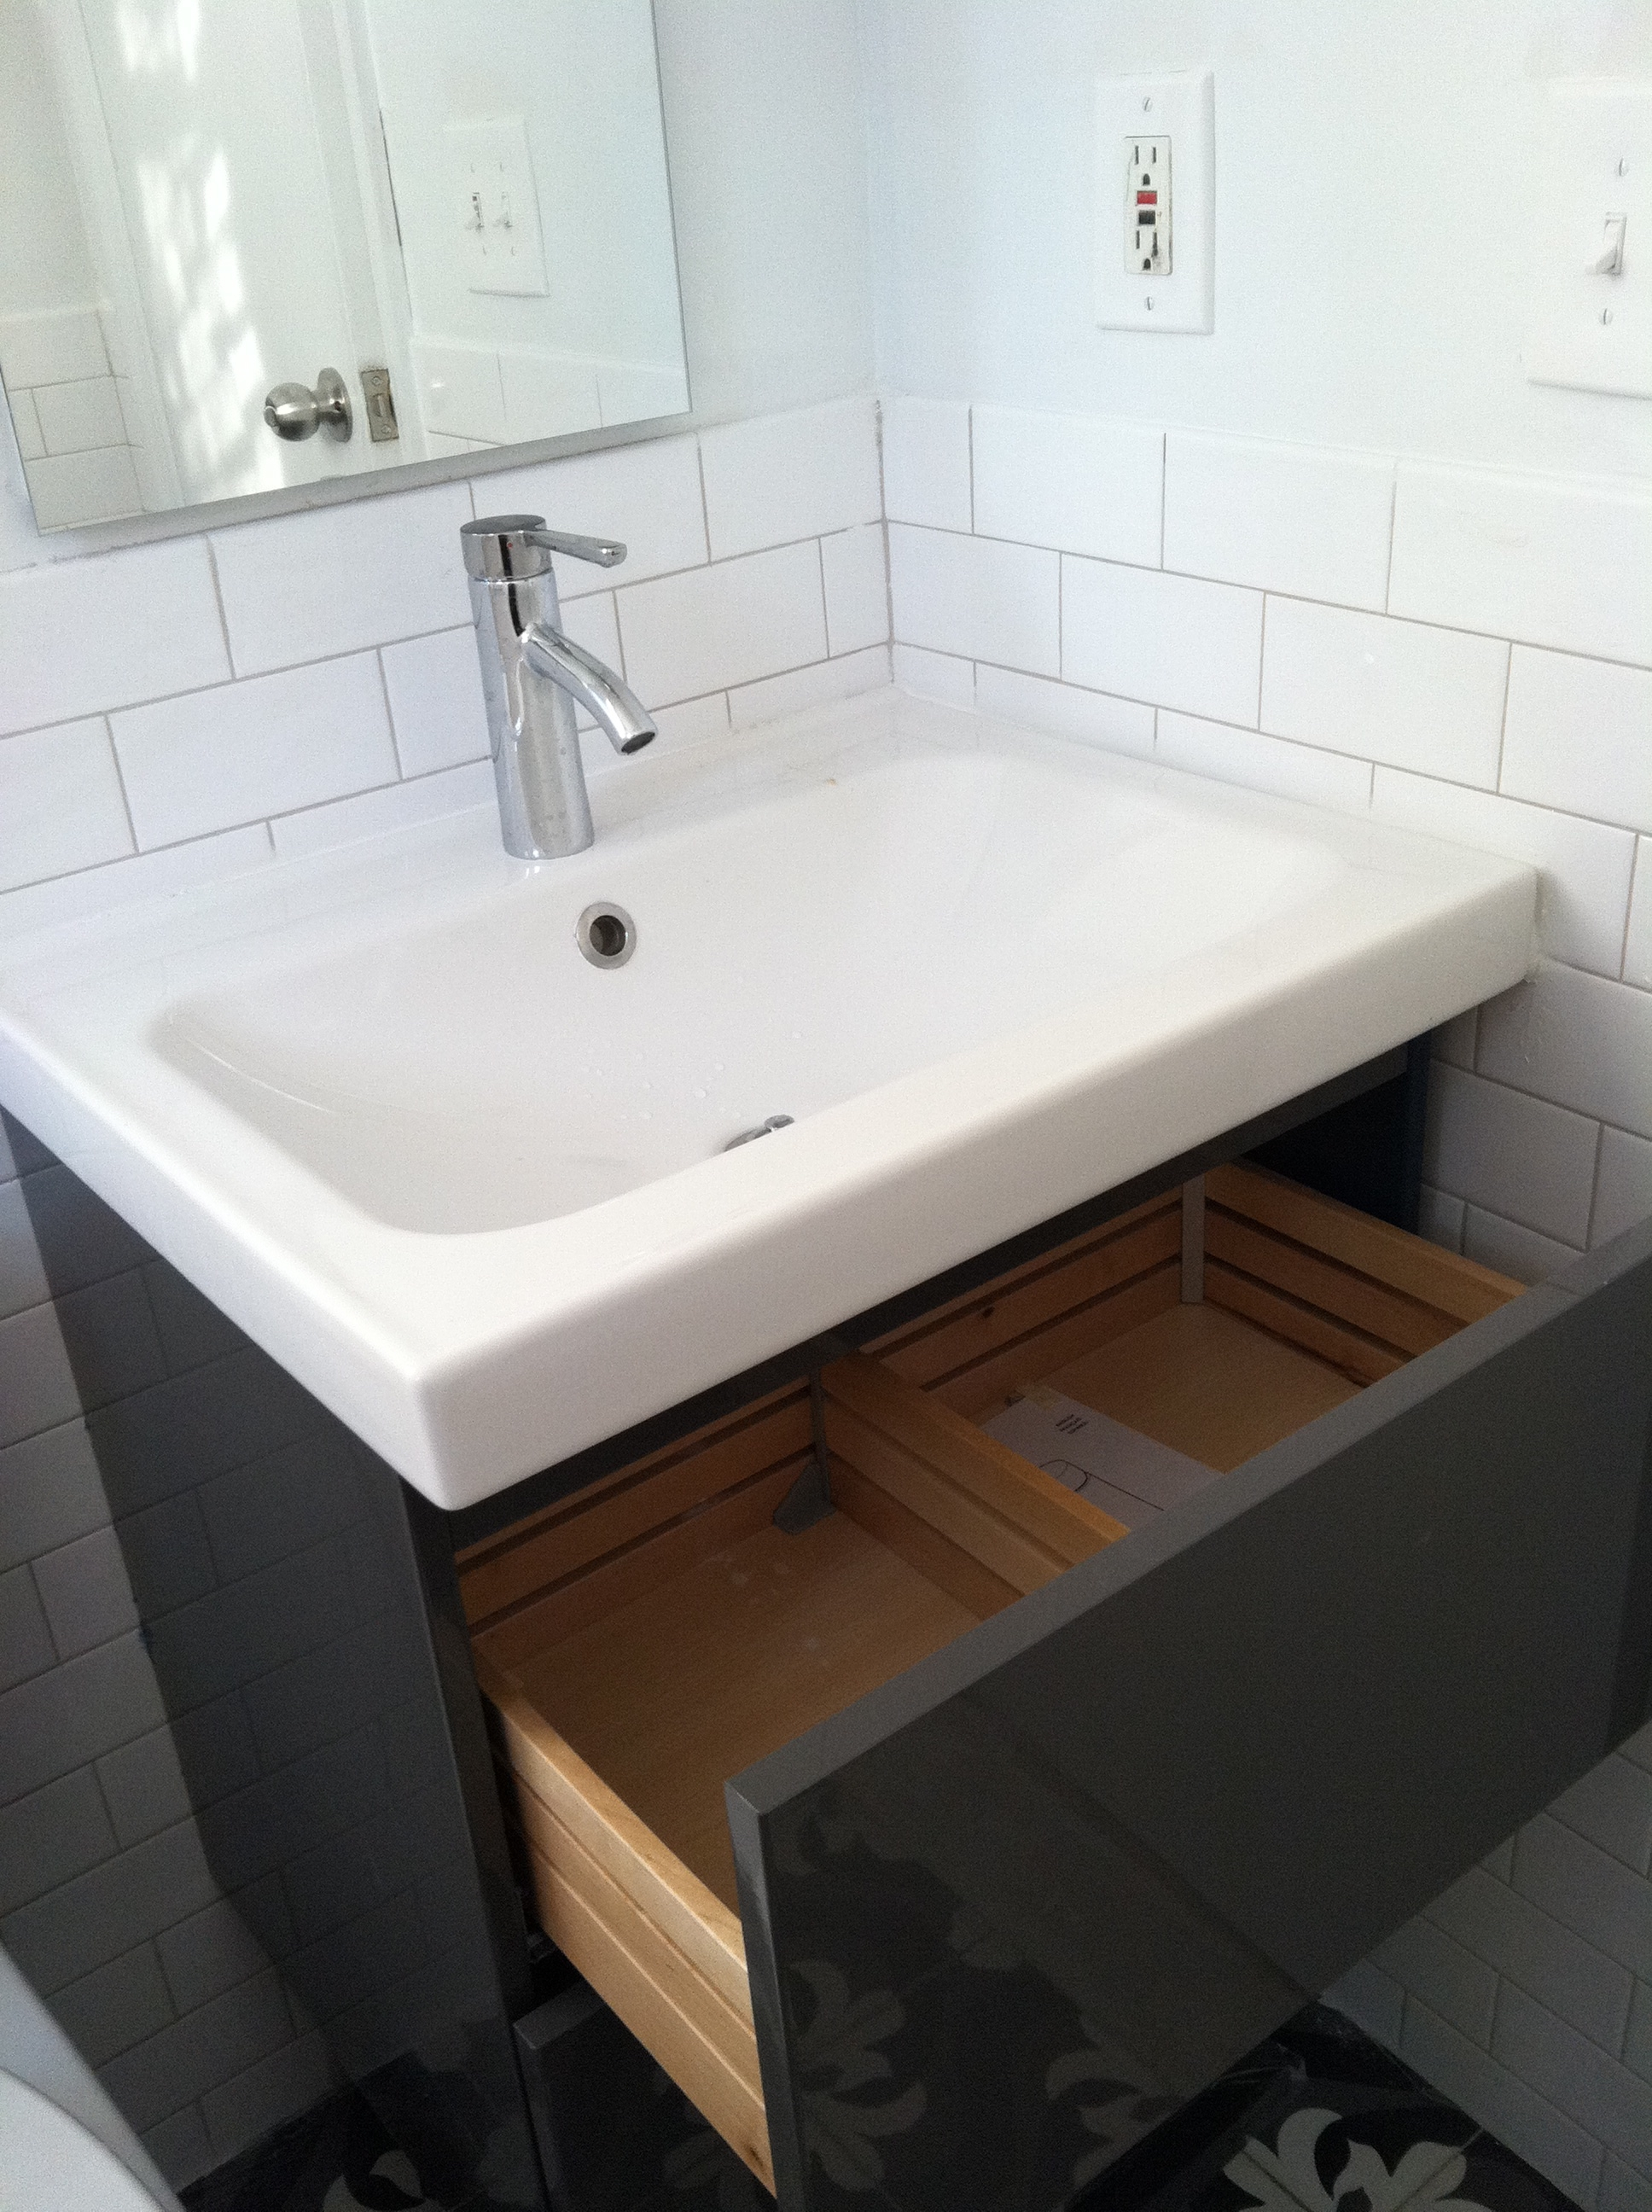 Ikea Bathroom Sinks Review